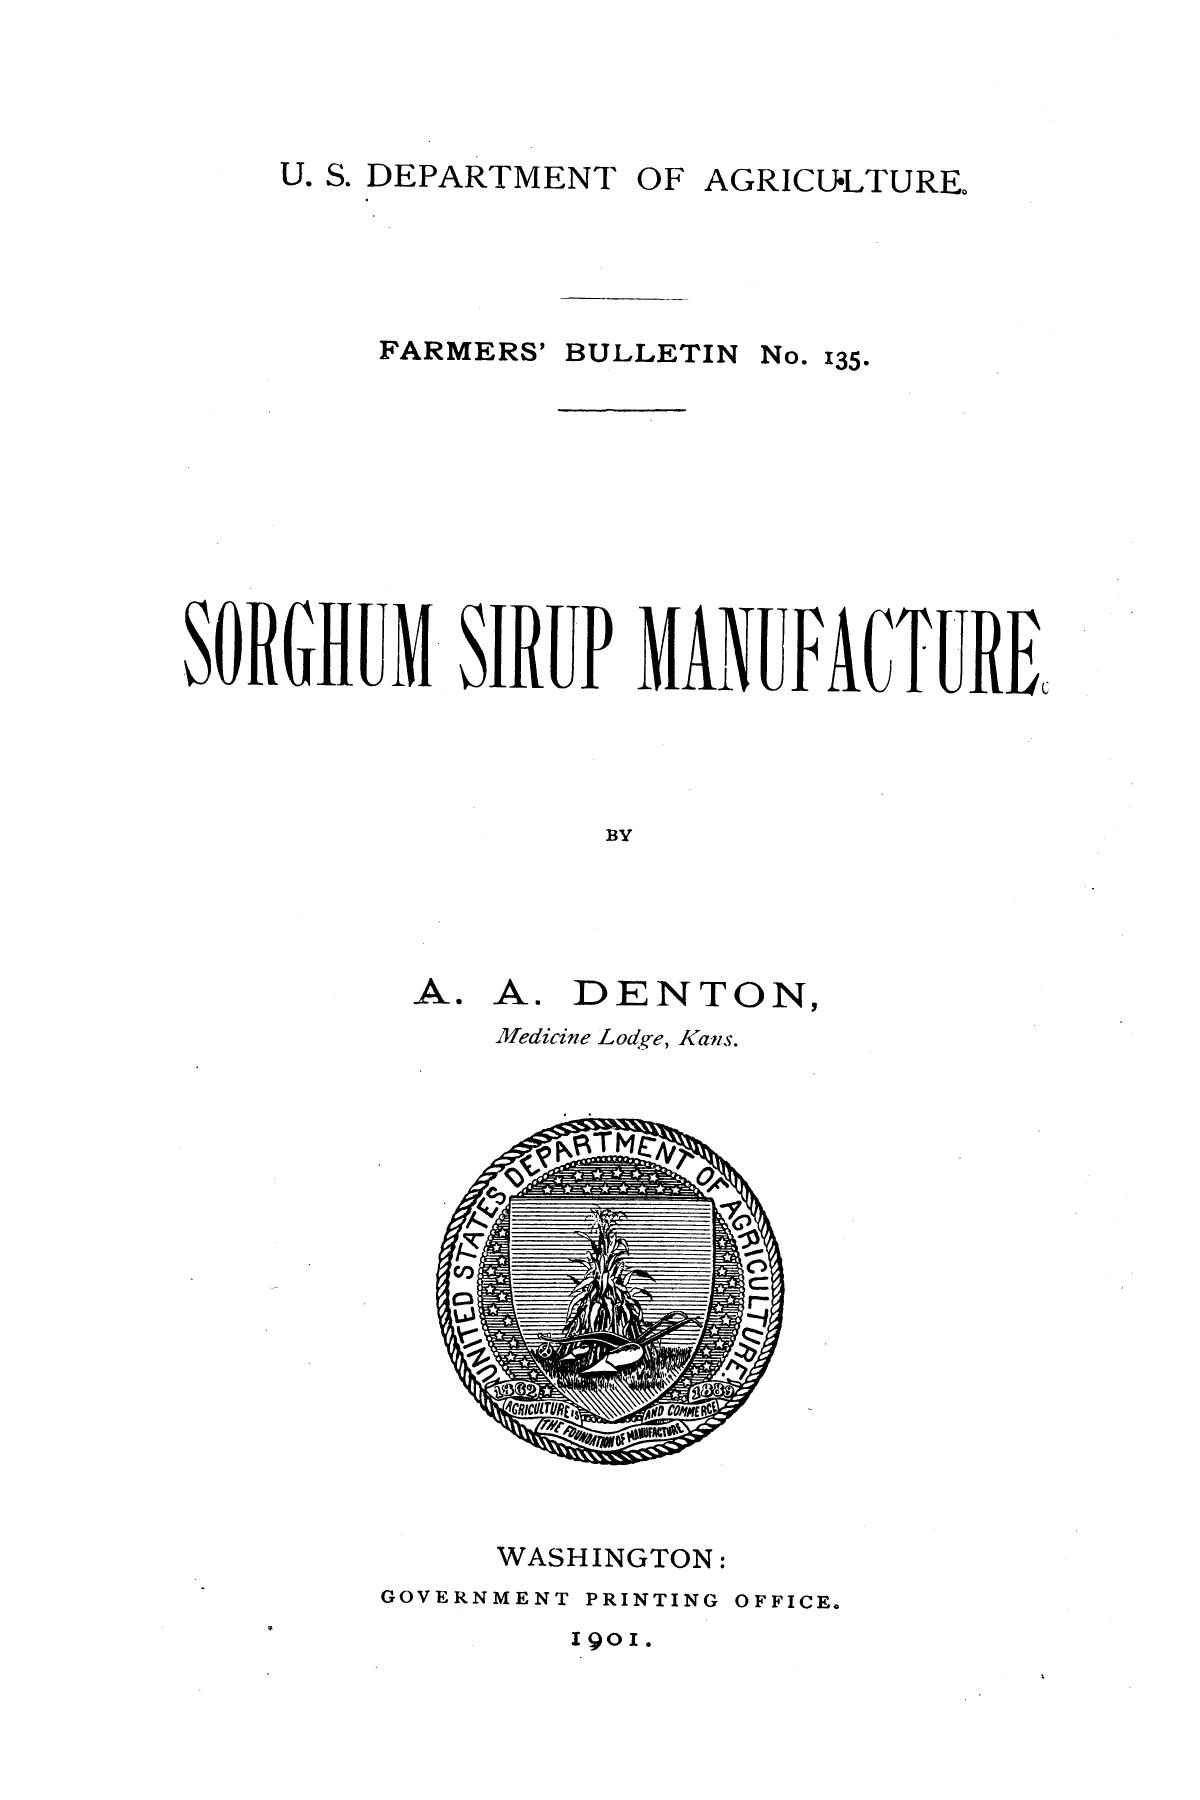 Sorghum sirup manufacture.                                                                                                      1